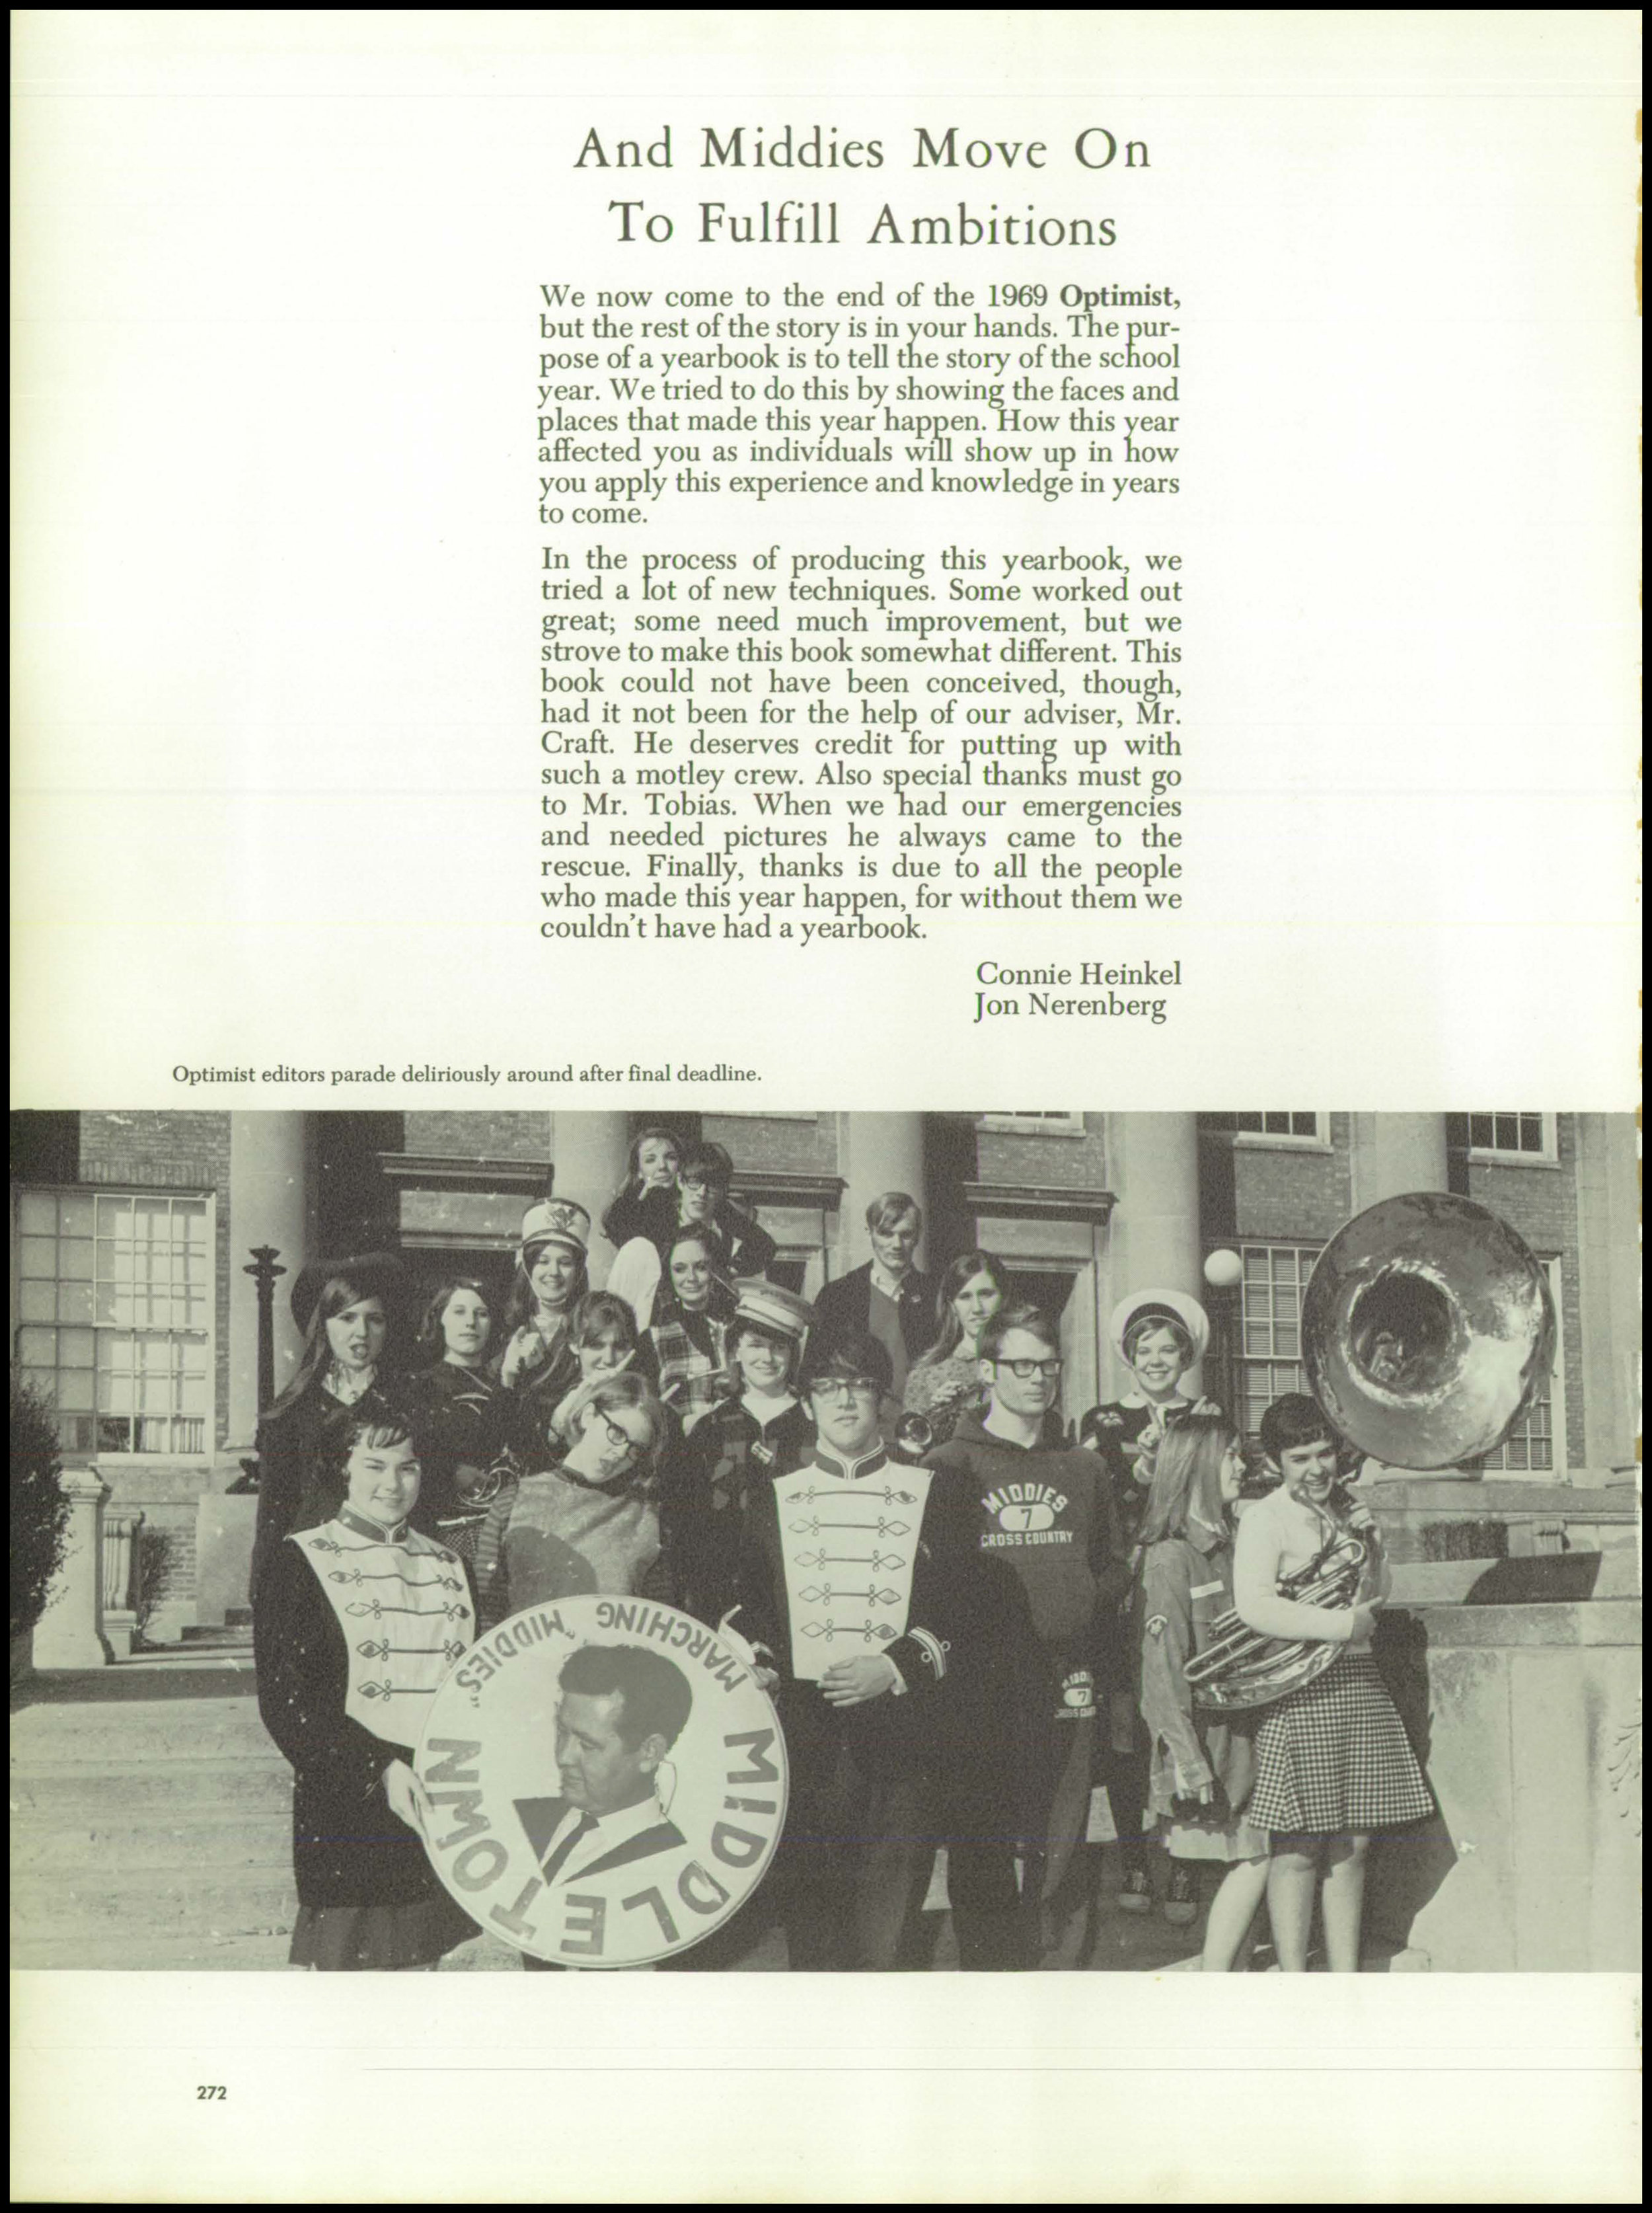 And Middies move on...(Last page of 1969 yearbook).jpg